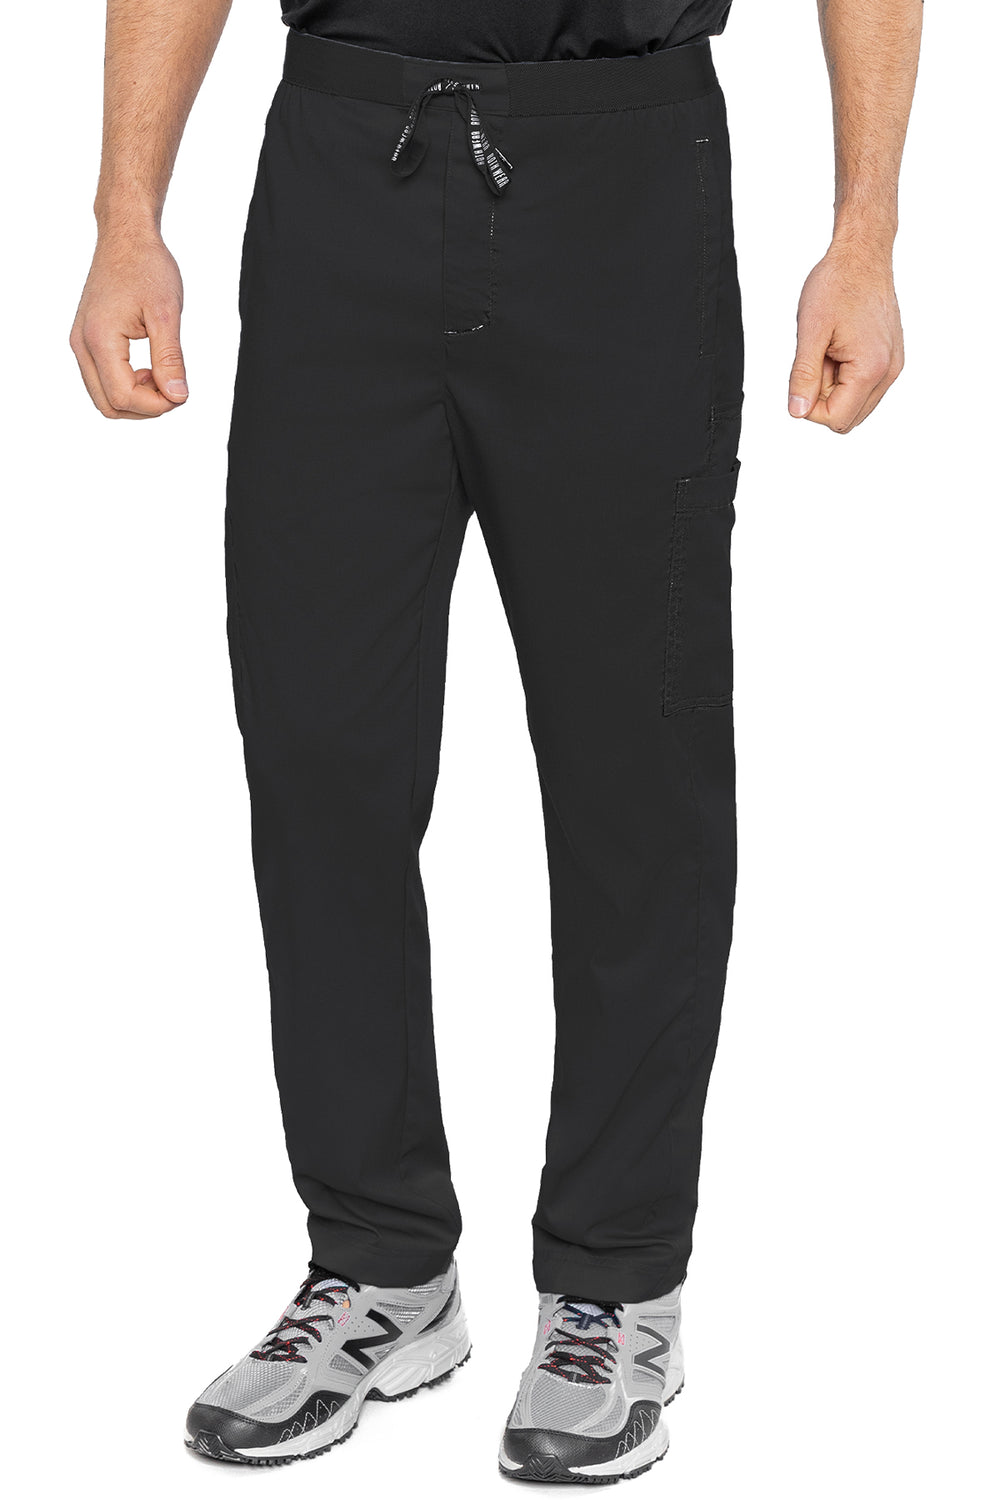 Med Couture Hutton Straight Leg Pant(Short)